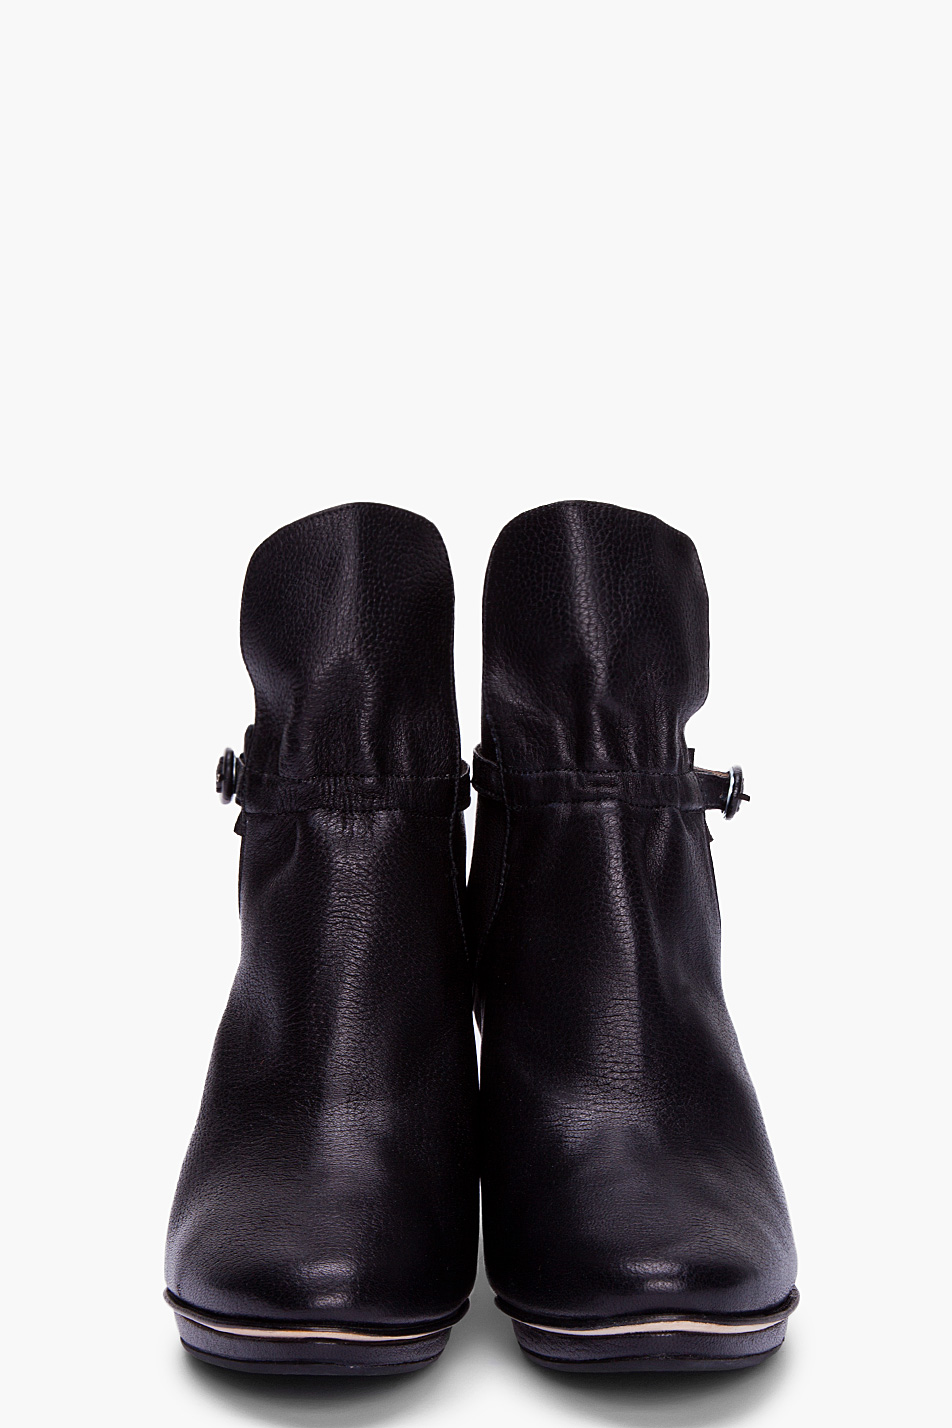 Repetto Black Leather Ankle Boots in Black | Lyst